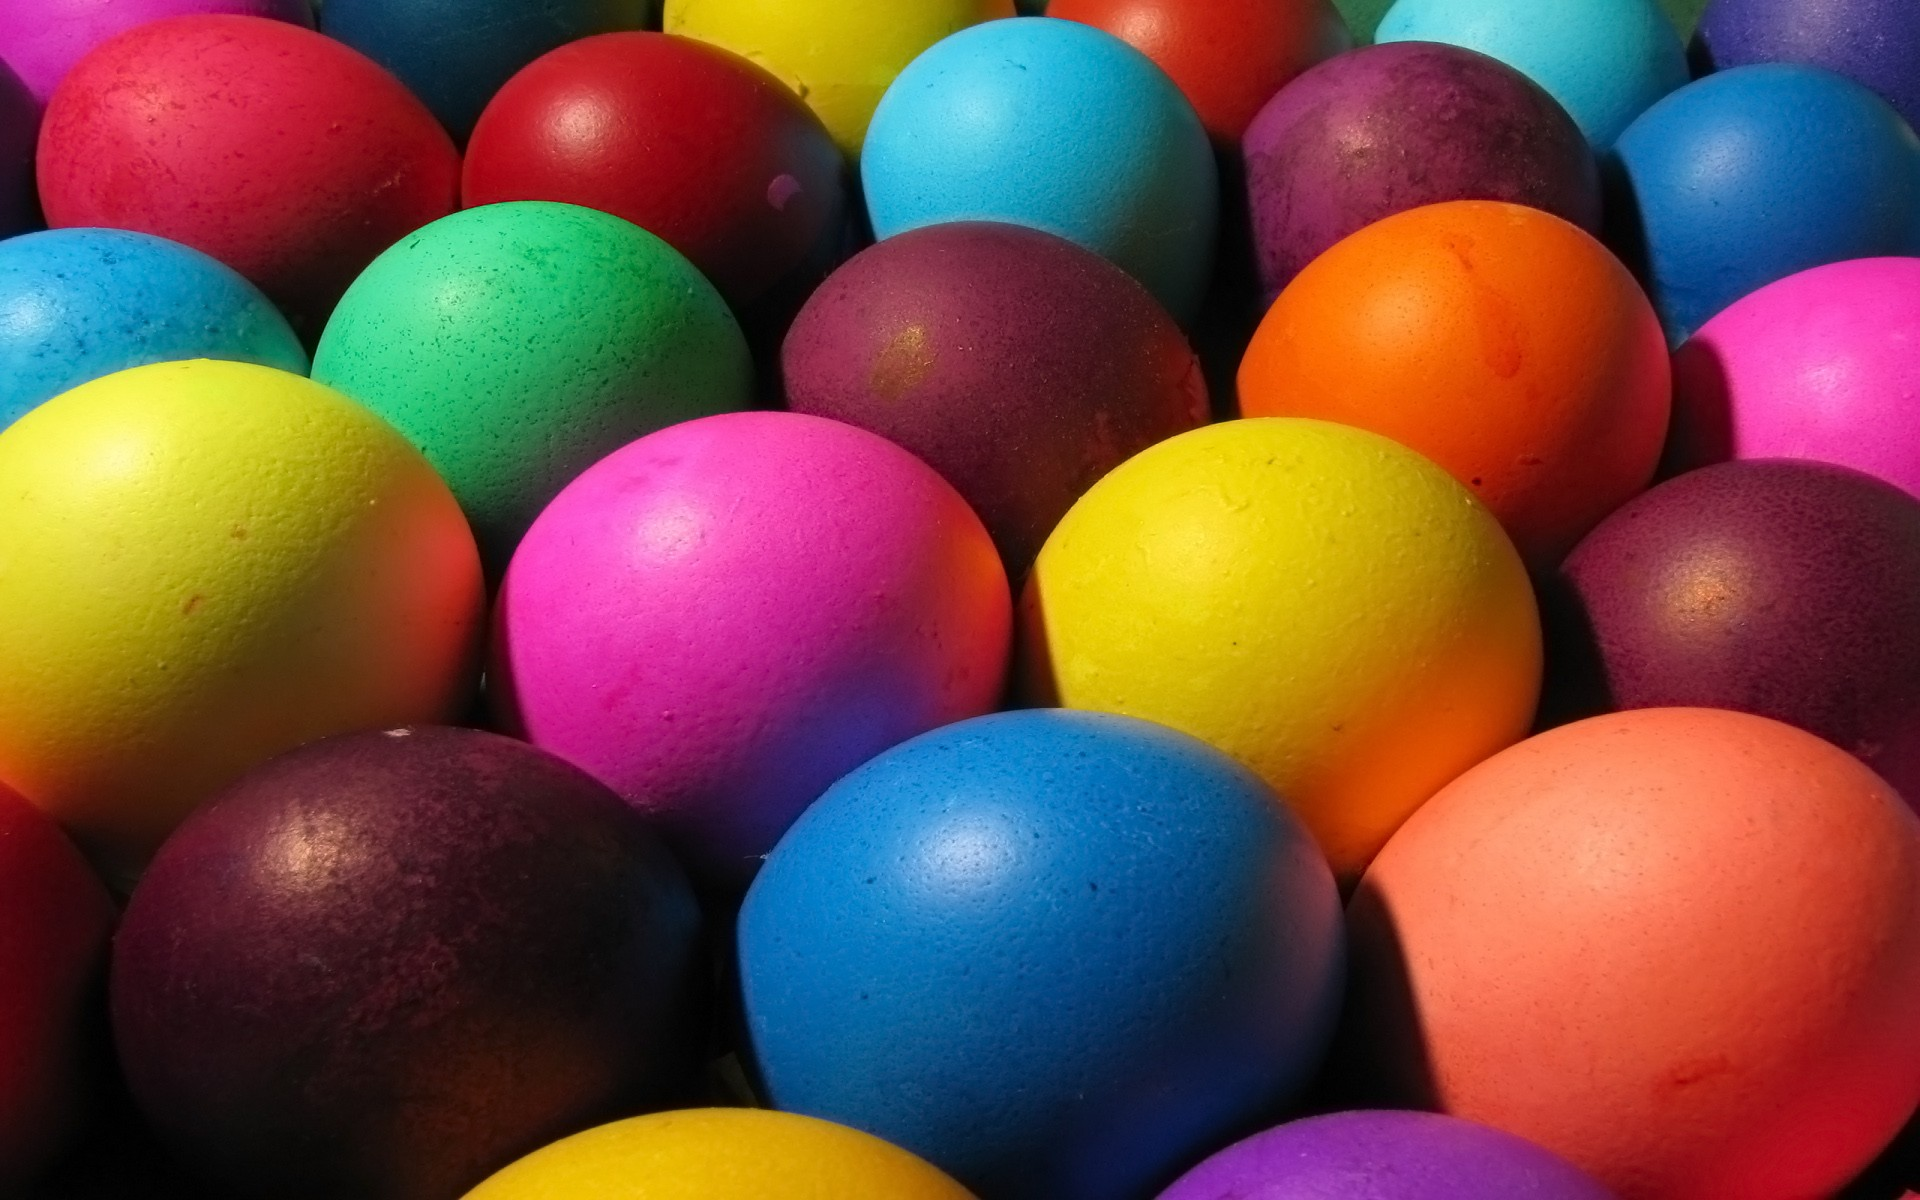 easter egg background download free amazing hd backgrounds for